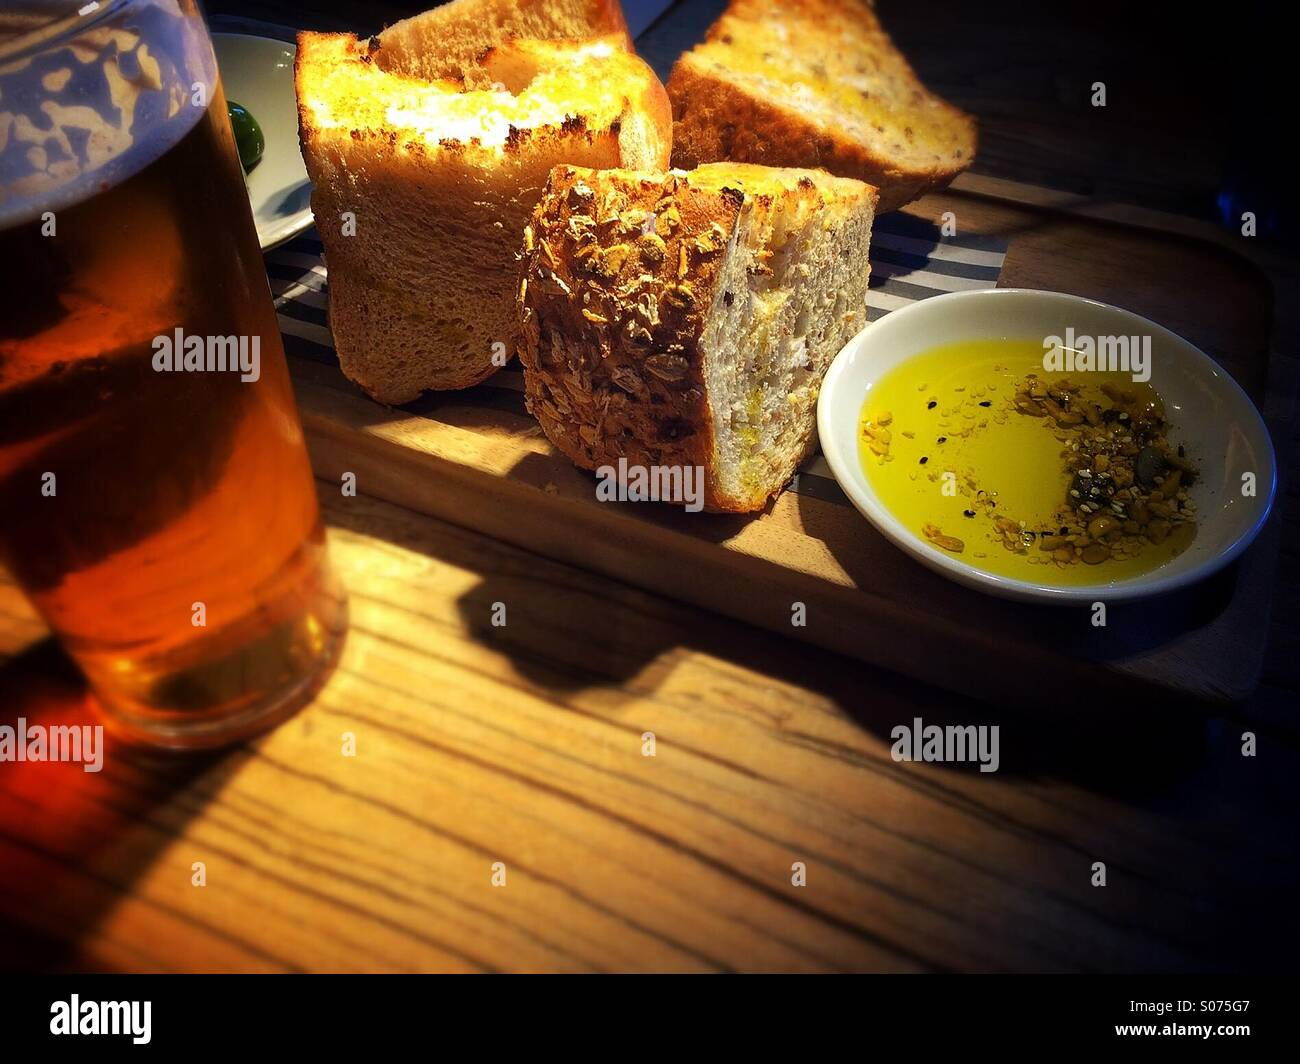 Bread and beer - Stock Image